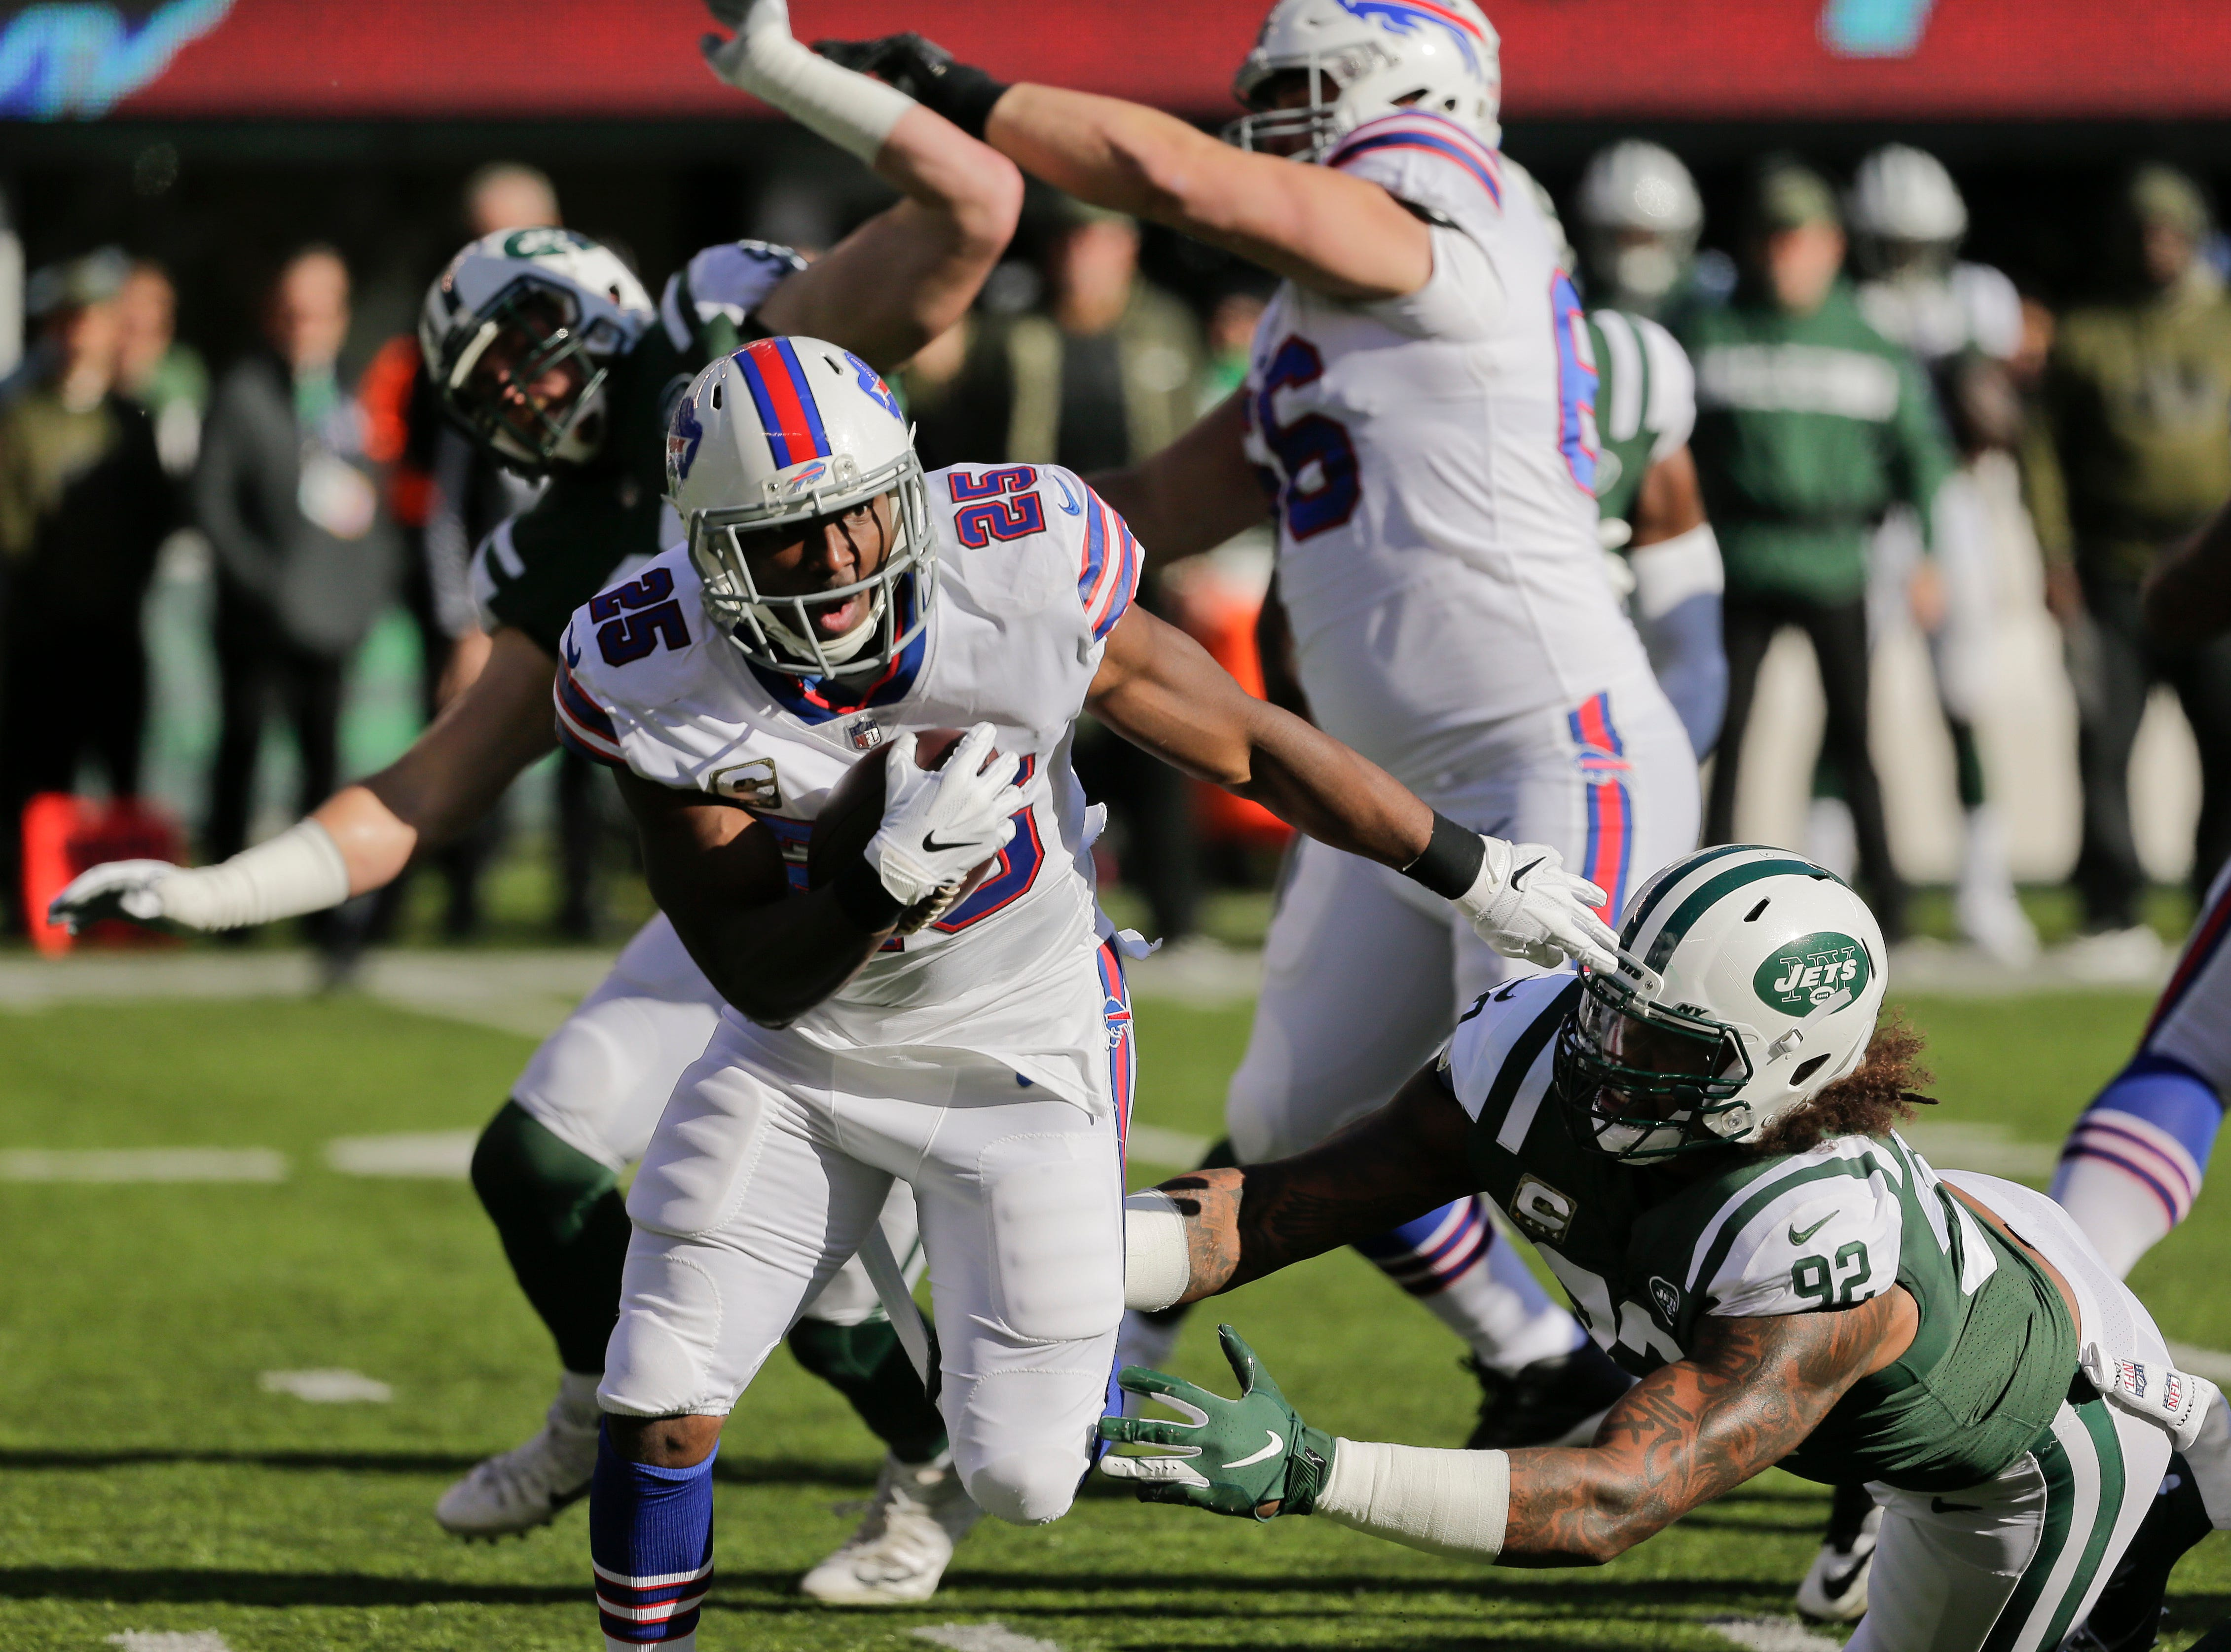 Buffalo Bills running back LeSean McCoy (25) runs the ball against the New York Jets during the first quarter of an NFL football game, Sunday, Nov. 11, 2018, in East Rutherford, N.J. (AP Photo/Seth Wenig)